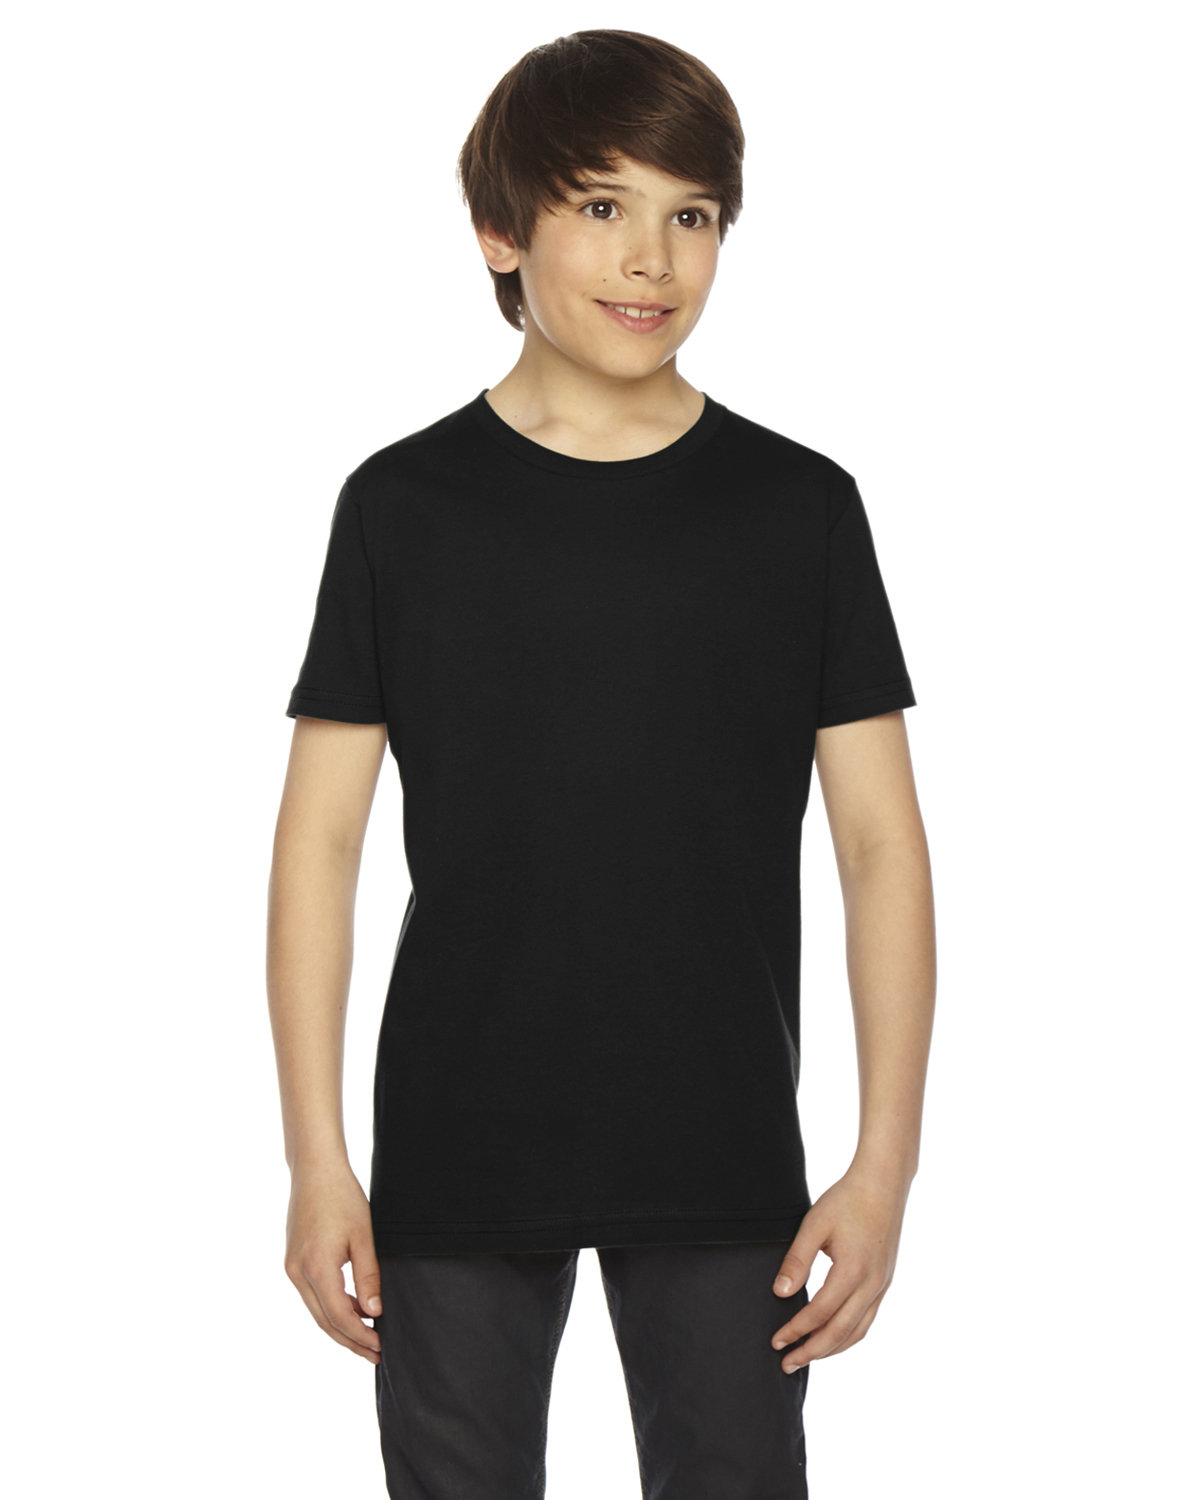 American Apparel Youth Fine Jersey USA Made Short-Sleeve T-Shirt BLACK